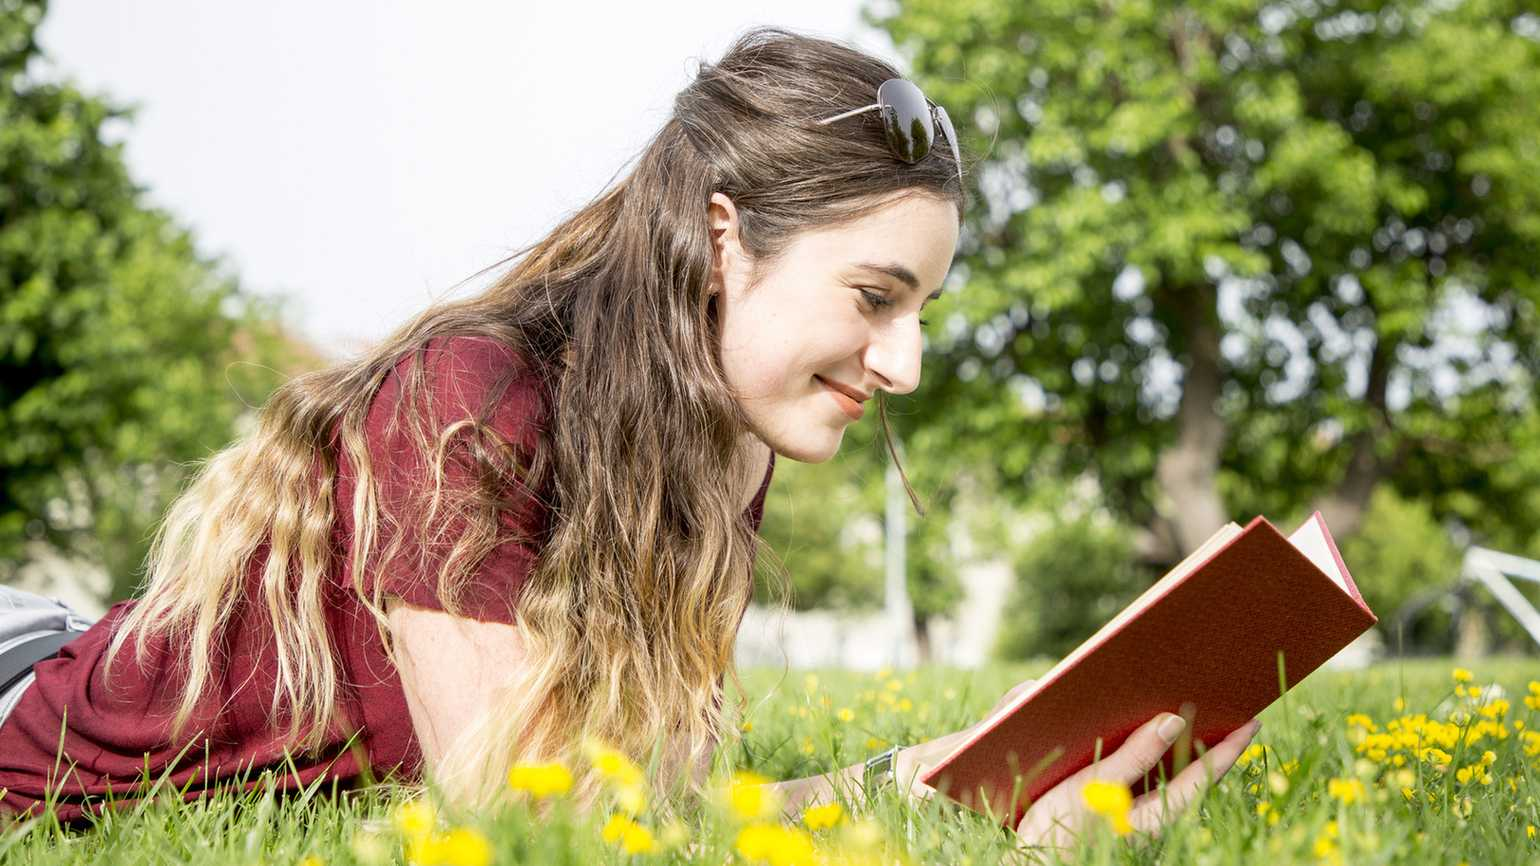 Woman reading book in field during spring (Getty Images)